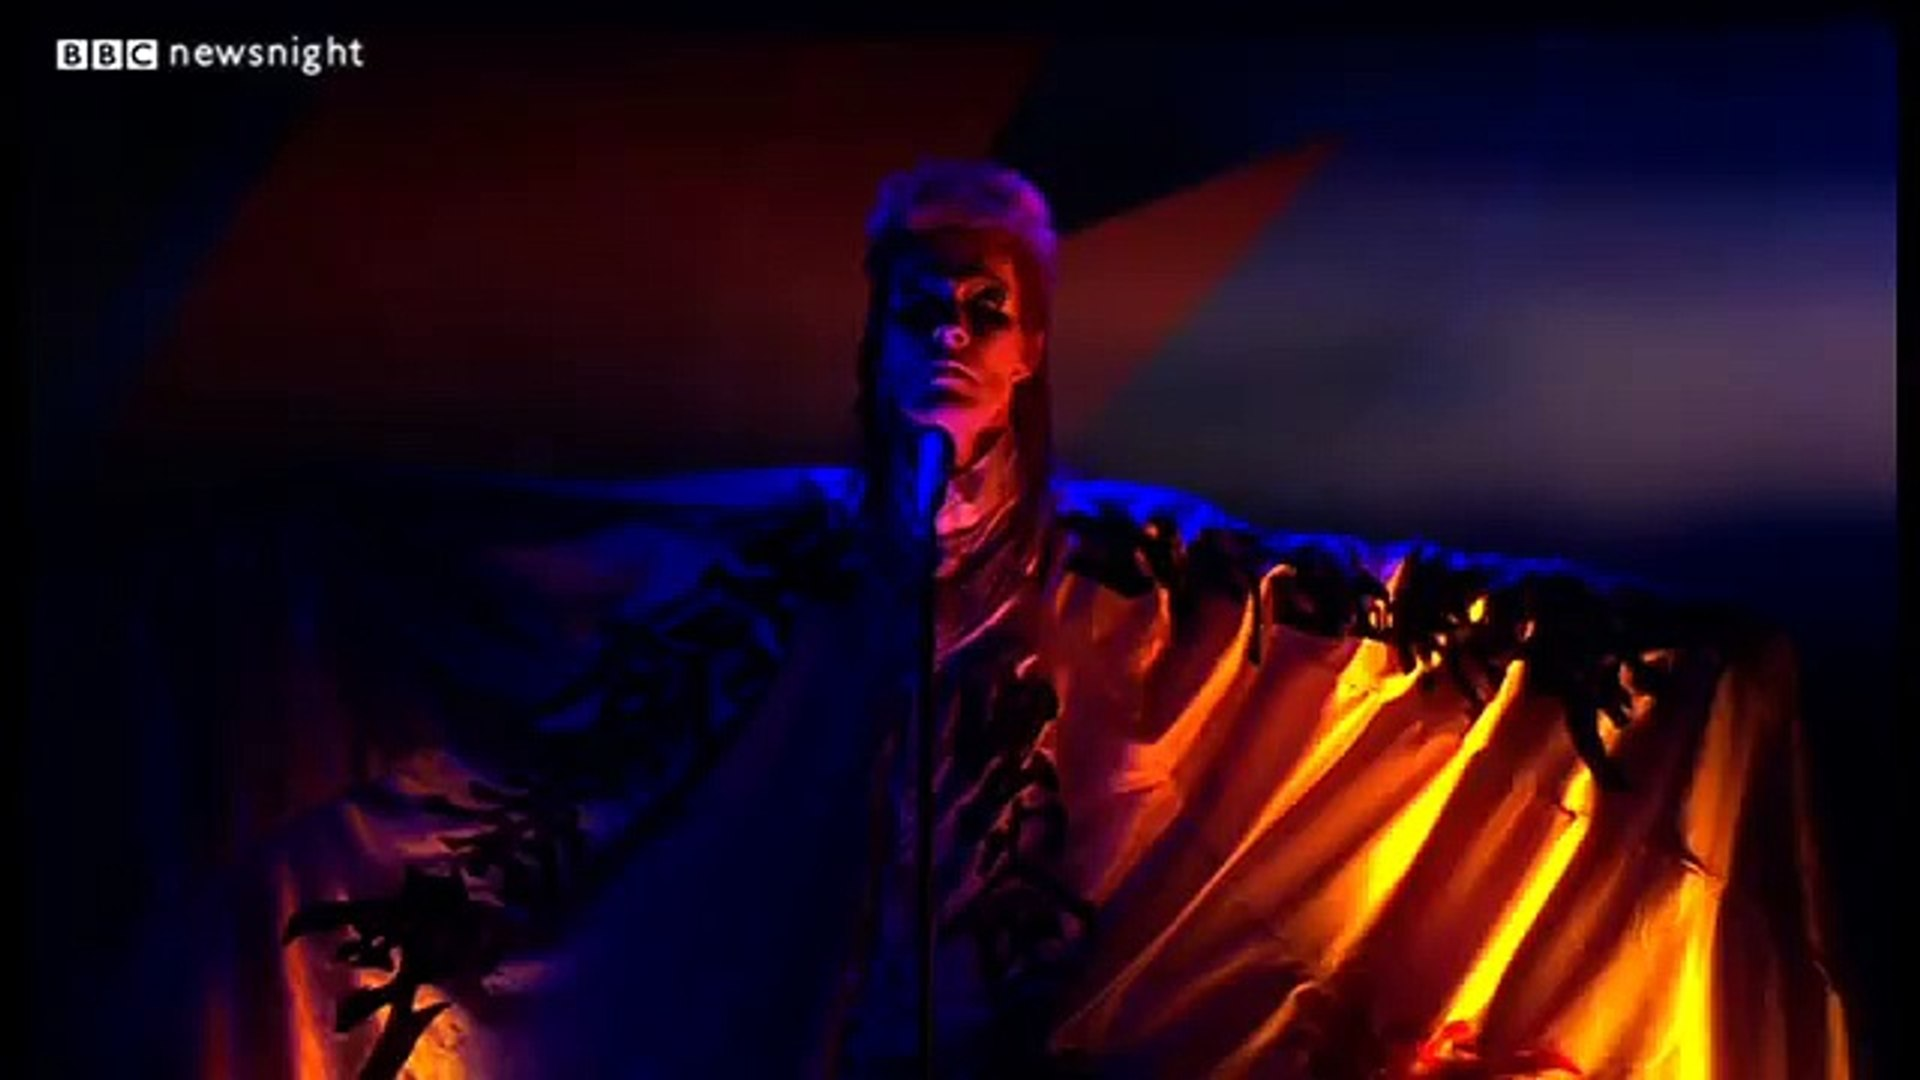 NEWSNIGHT: David Bowie sings us out